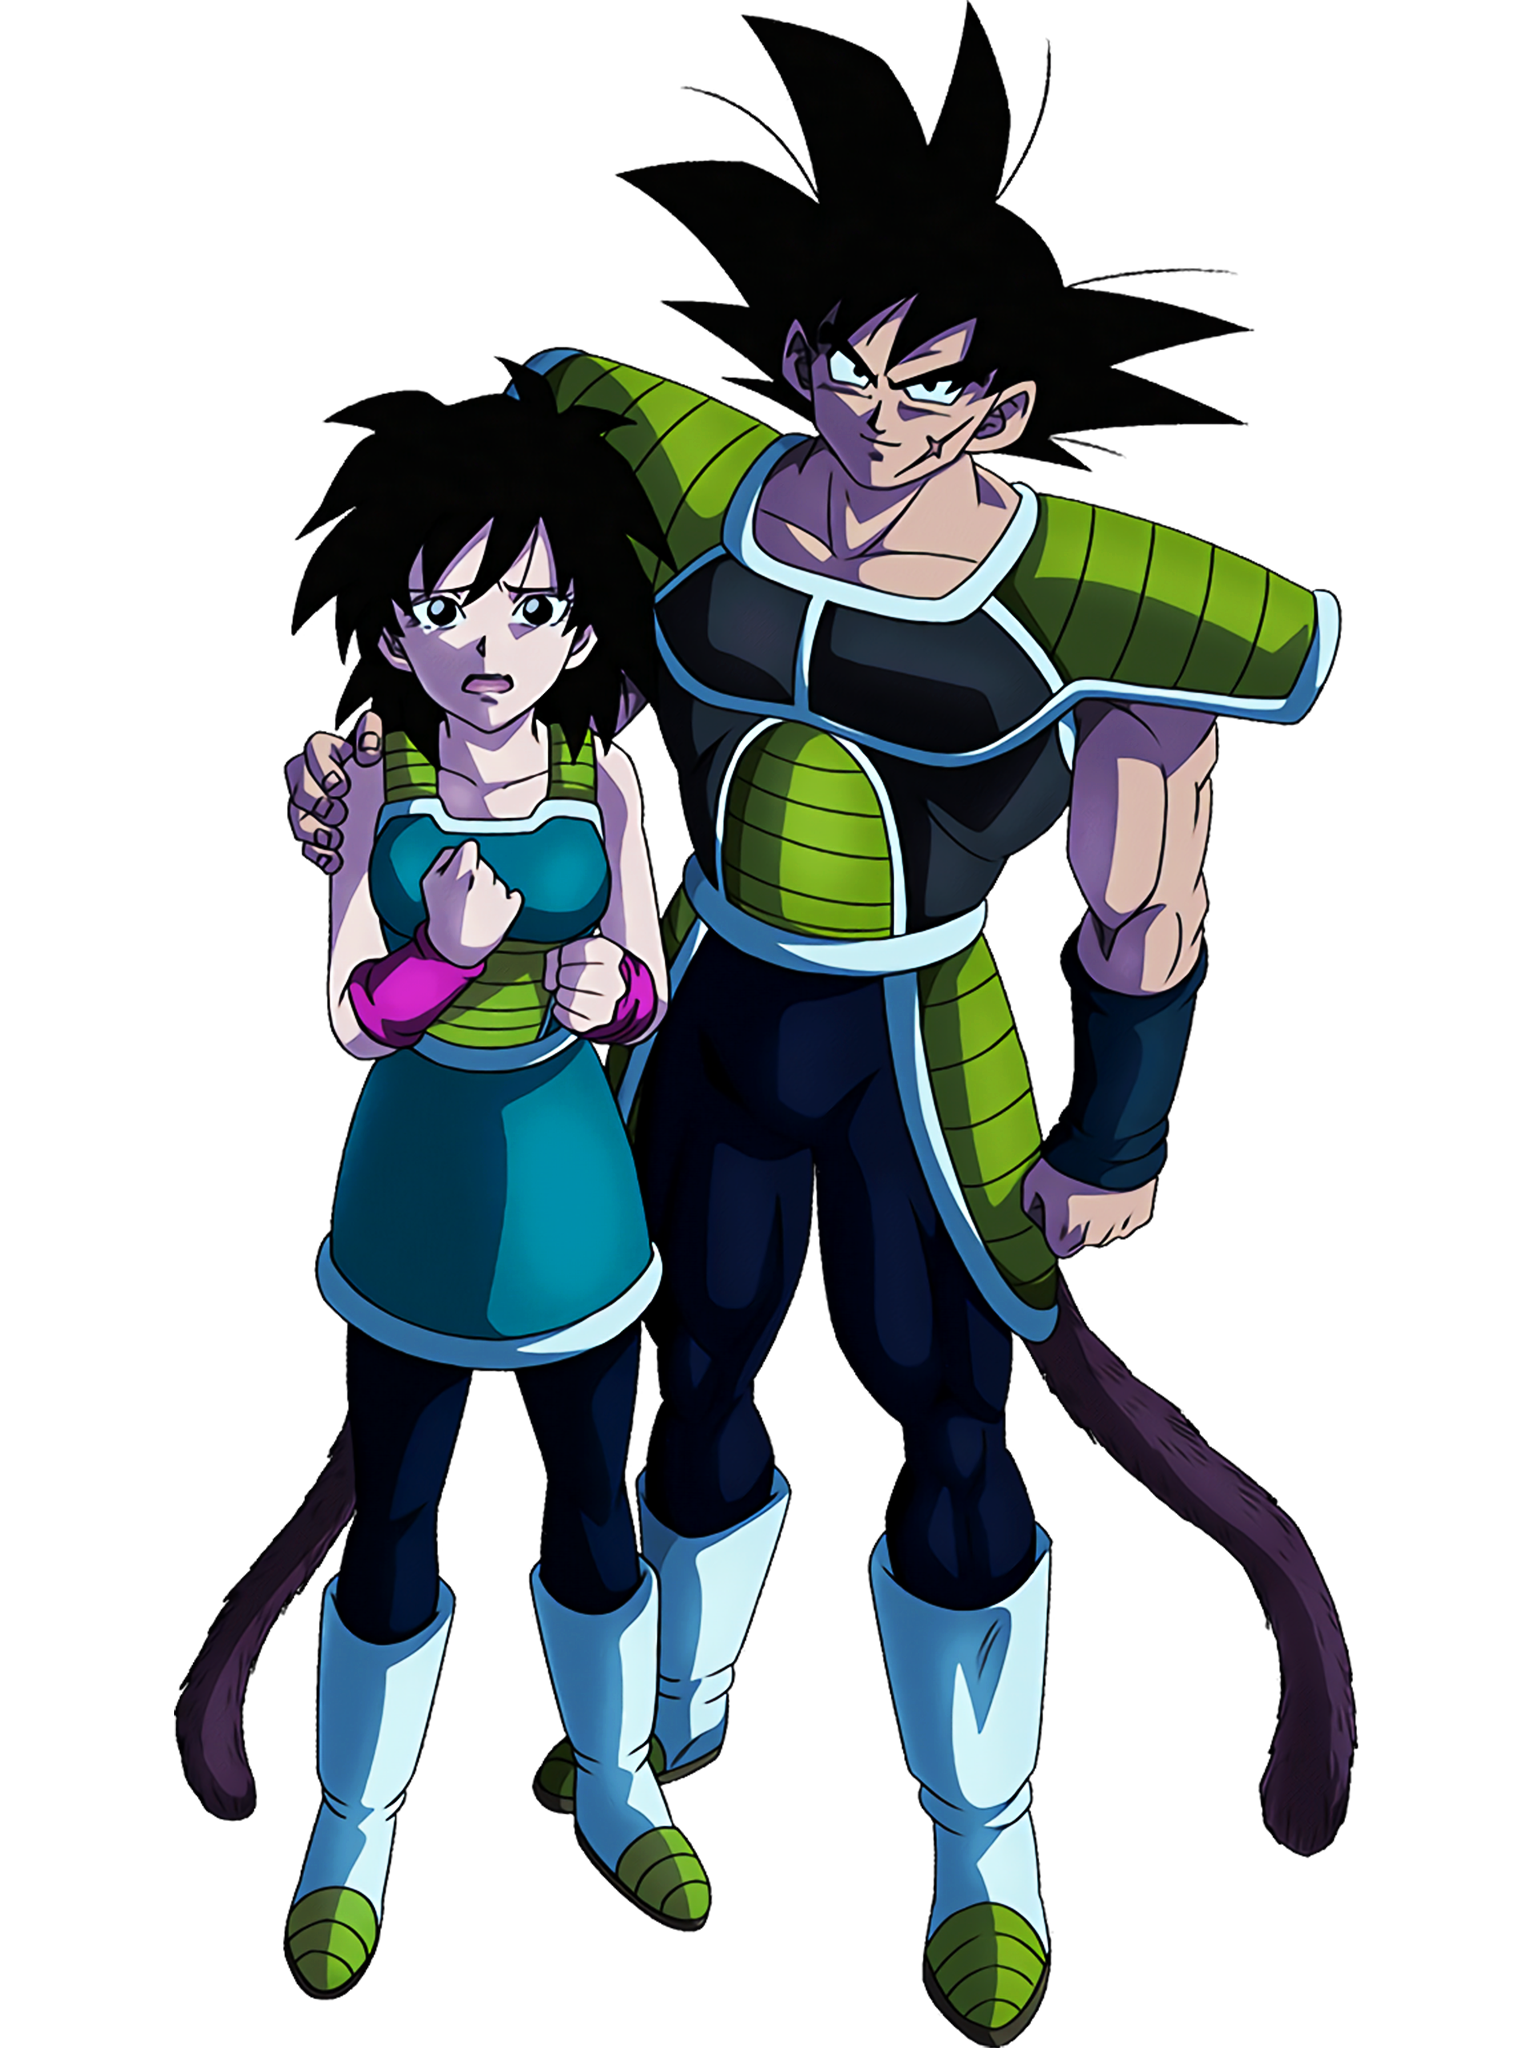 Bardock and Gine DBS Render (Dragon Ball Z Dokkan Battle).png